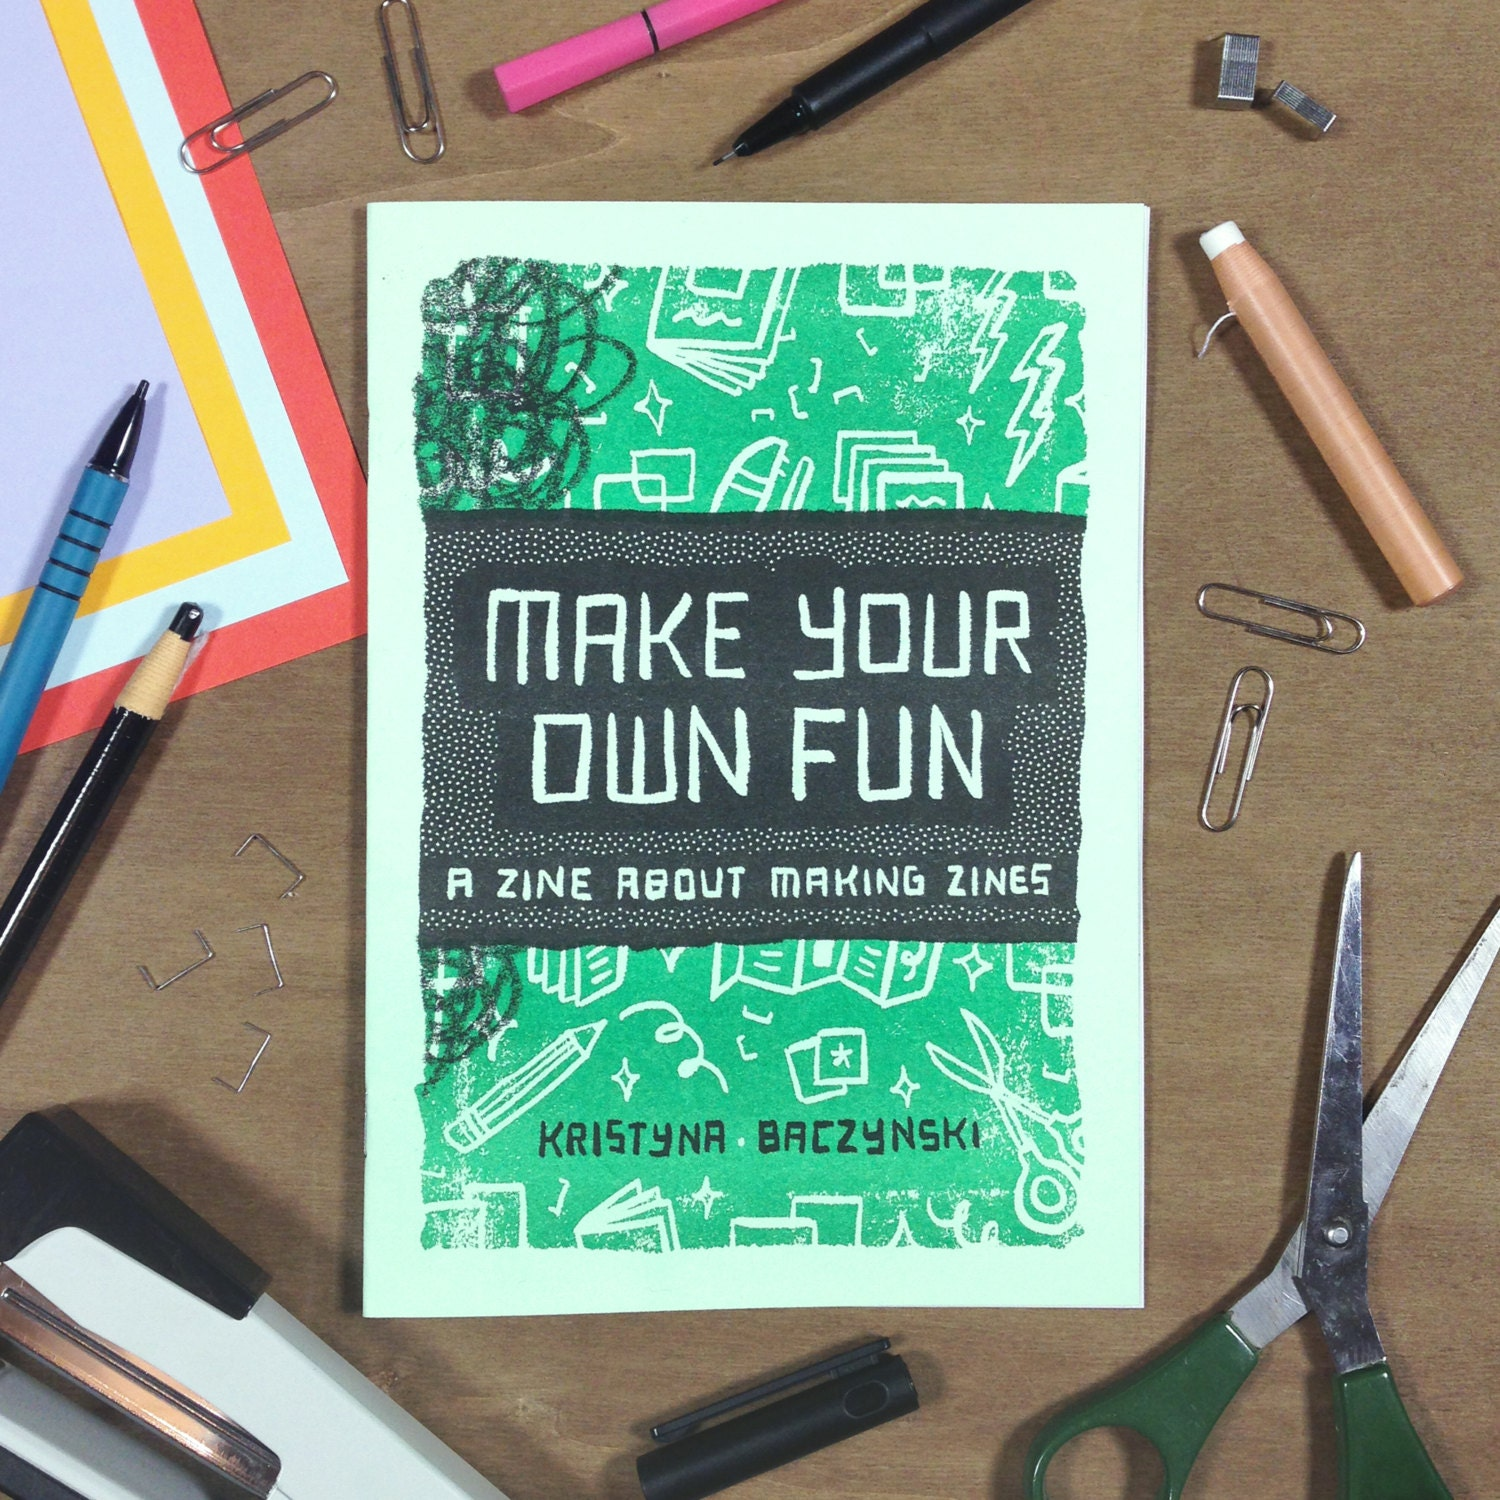 Making Your Own Halloween Decorations: A Zine About Making Zines 'Make Your Own Fun